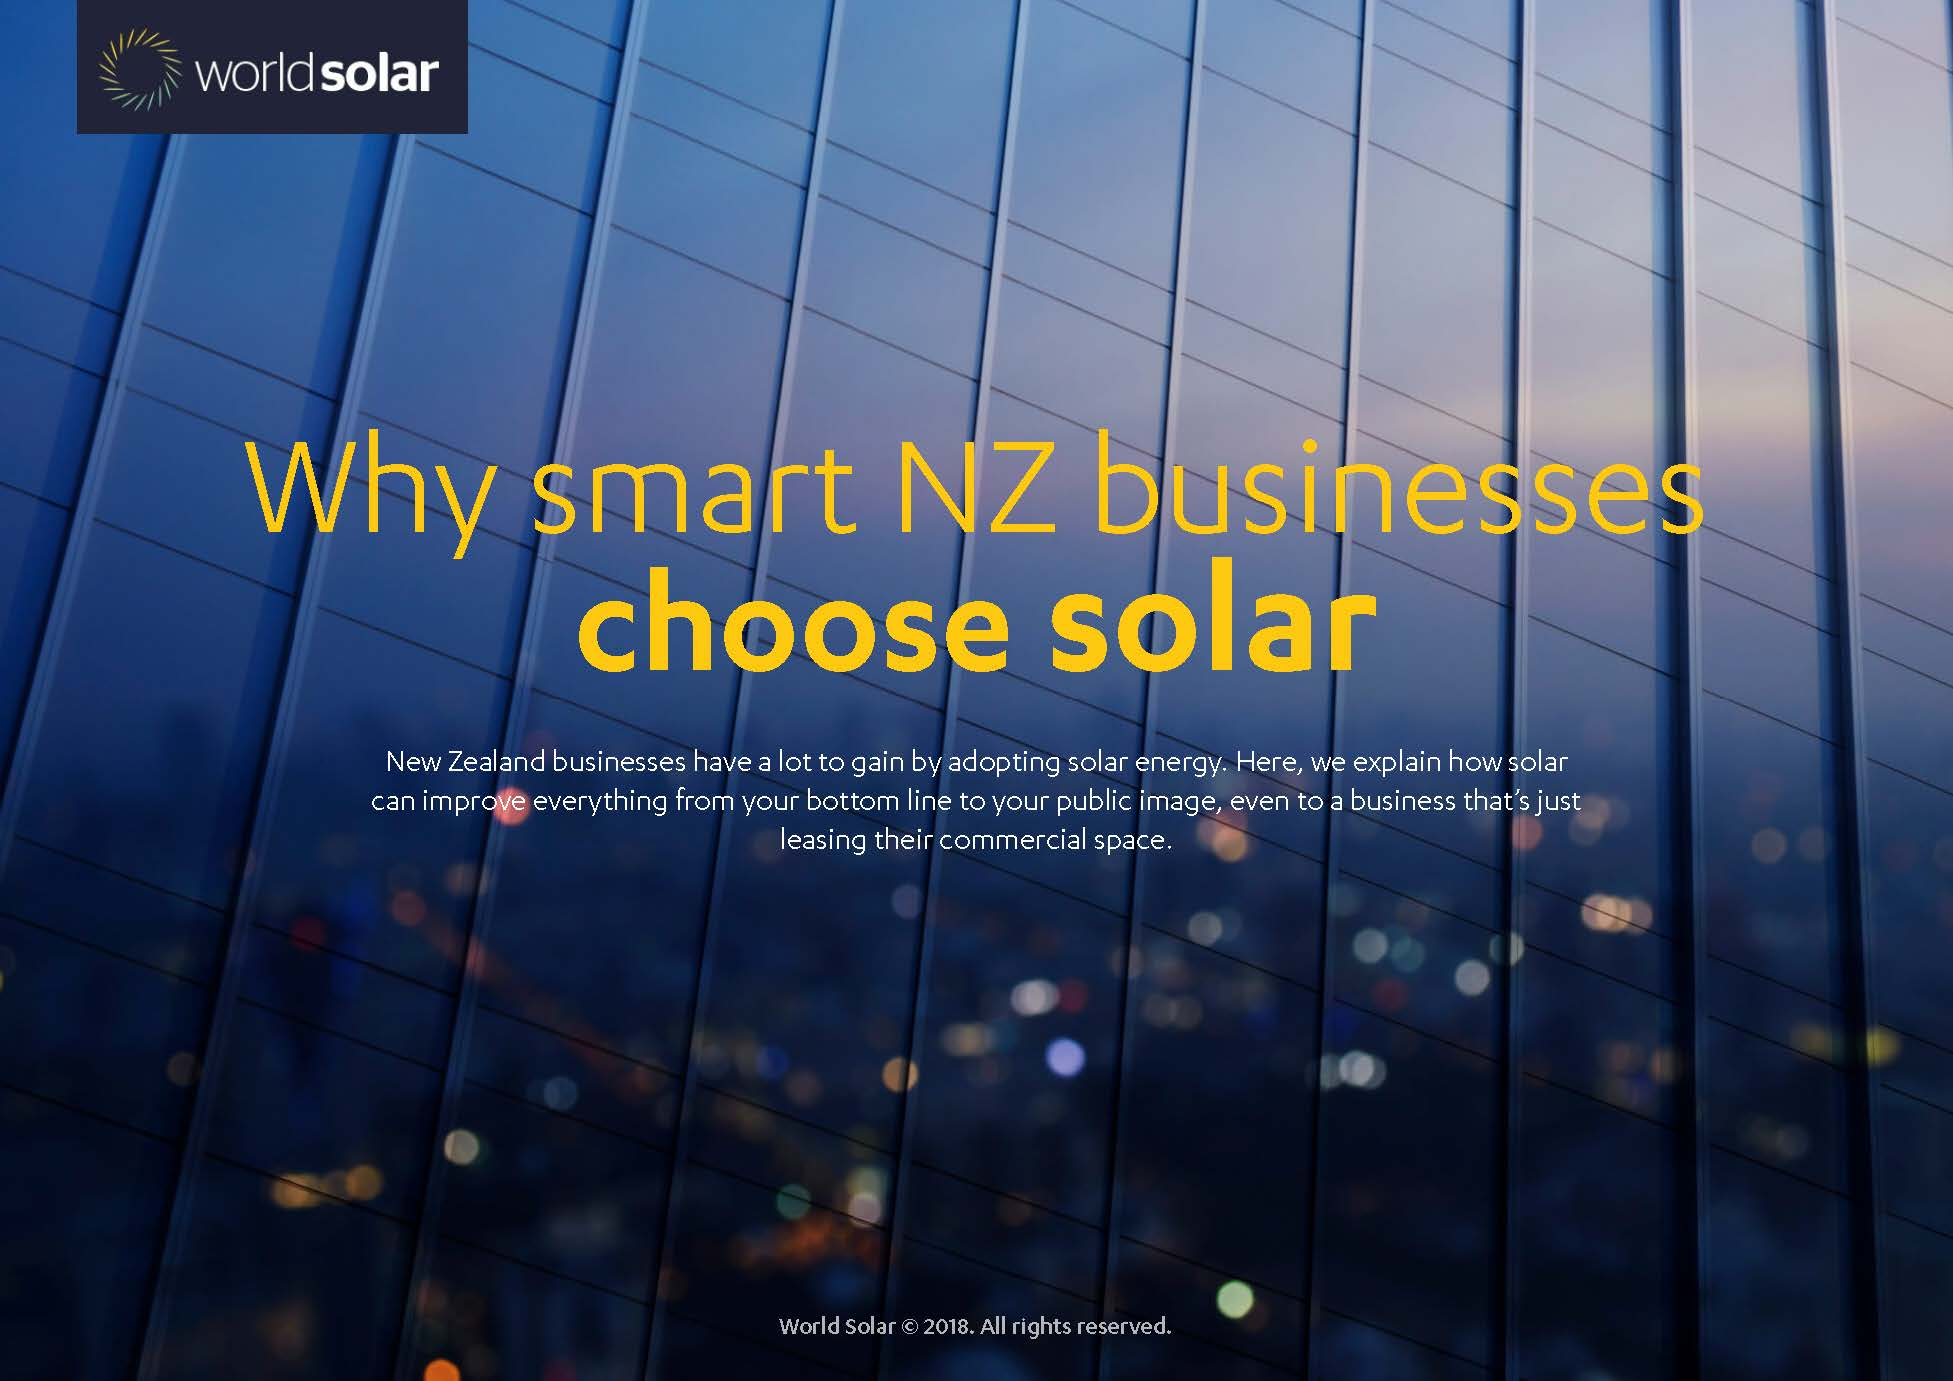 Why smart NZ businesses choose solar